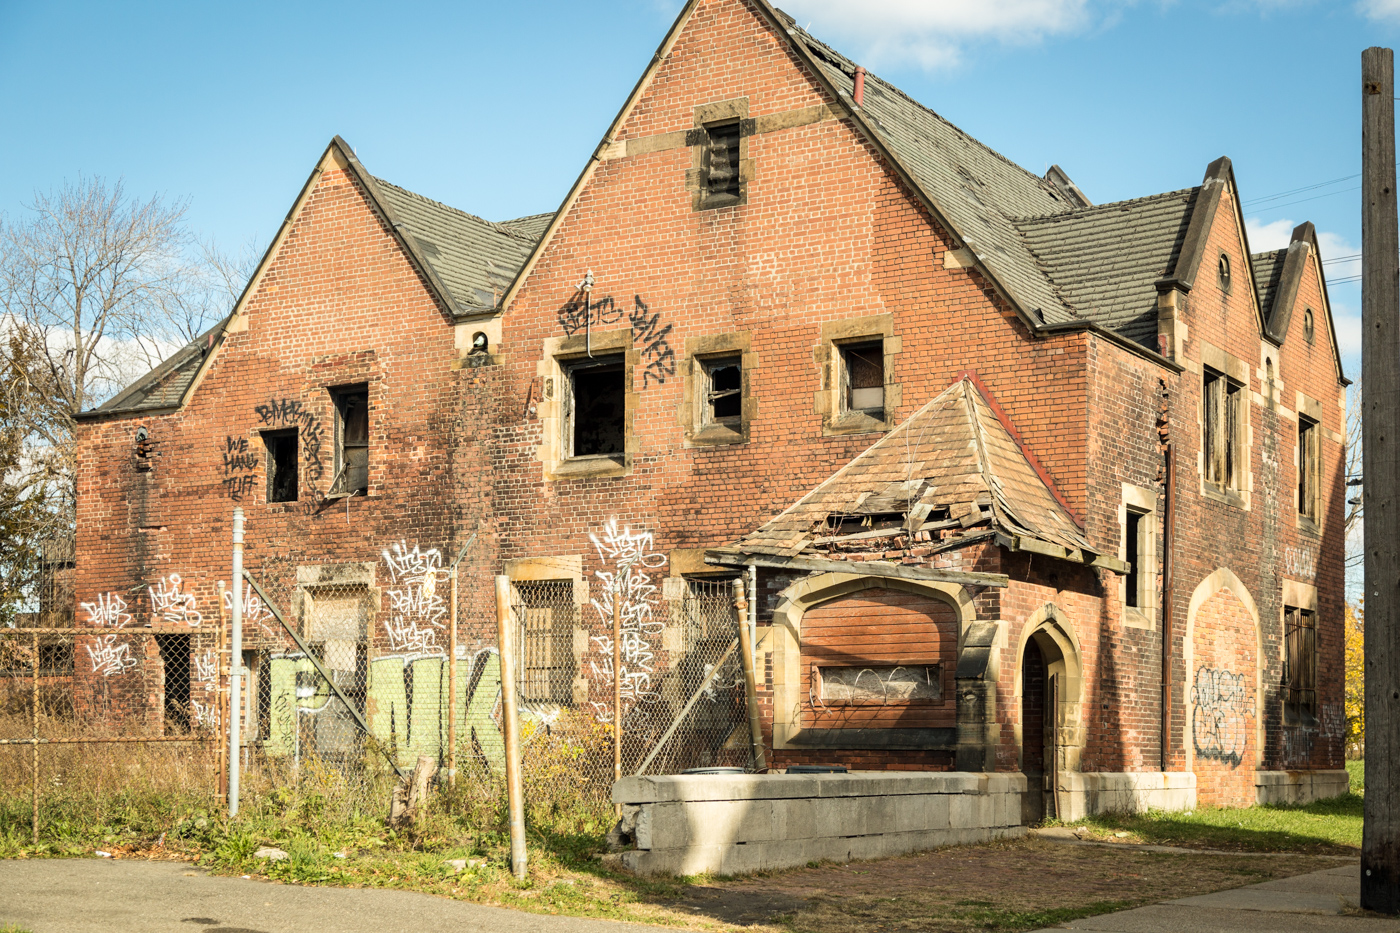 Derelict house in Brush Park, Detroit